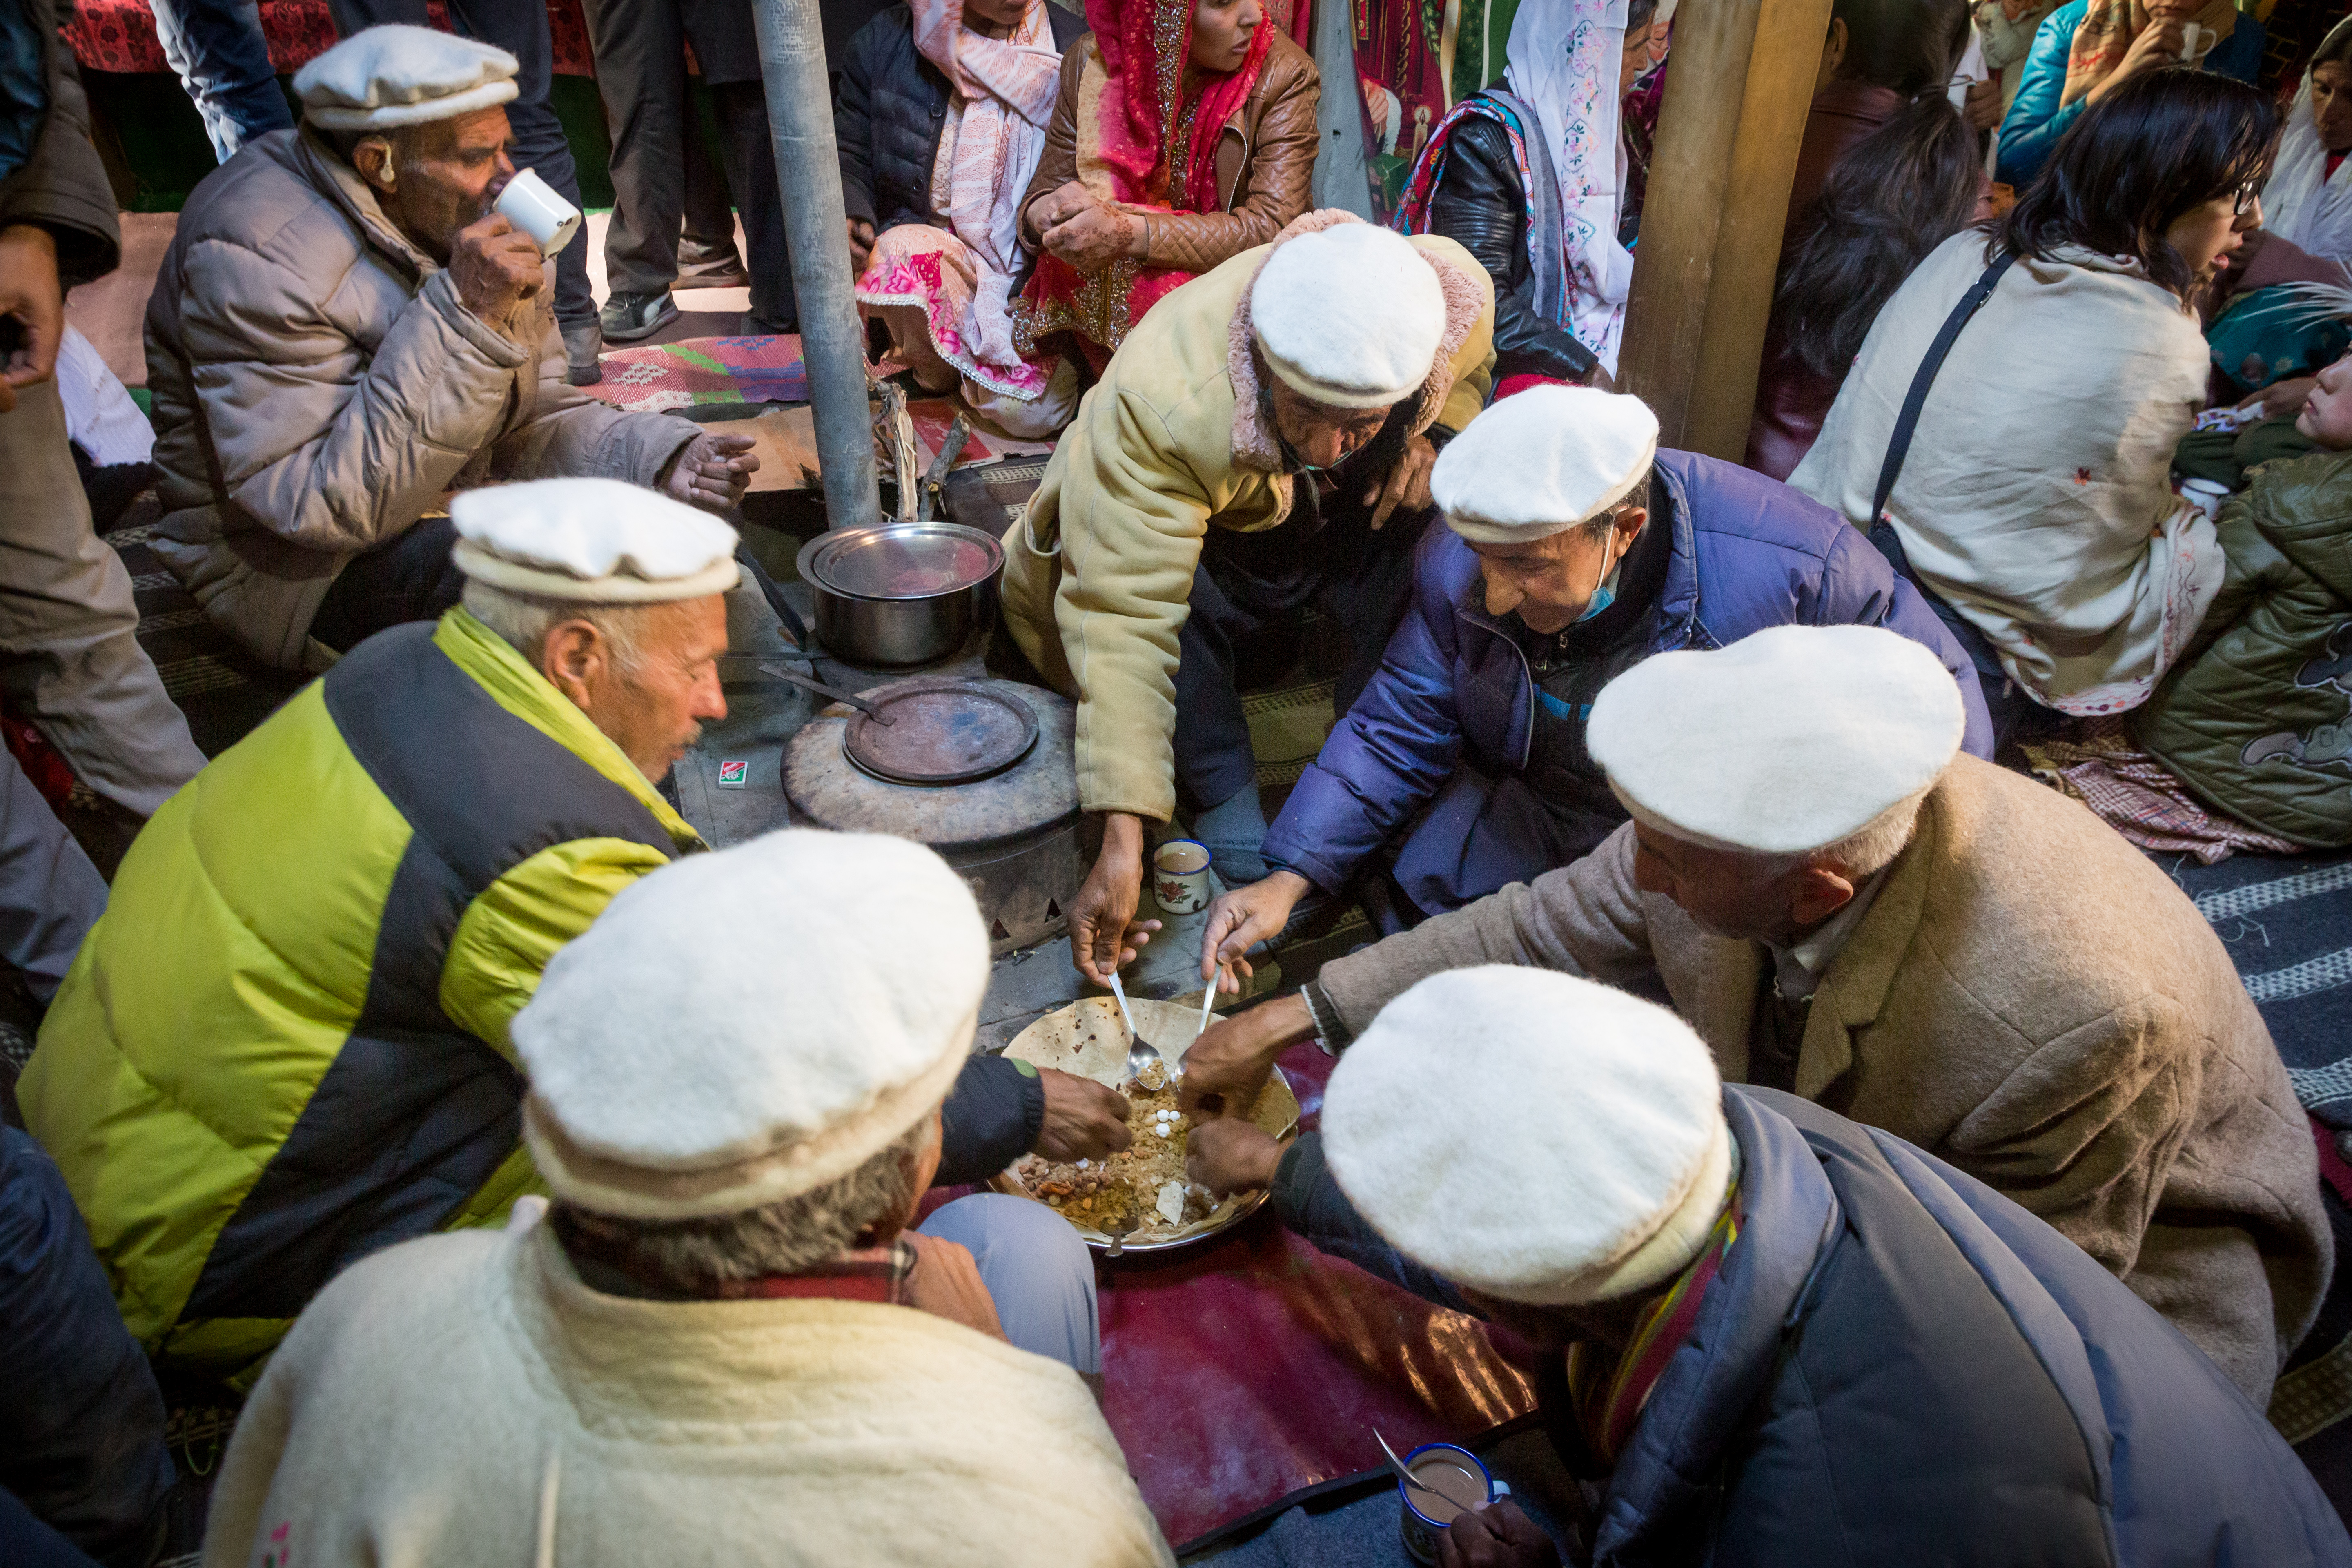 The image shows Wakhi people having meals together in a cultural event. it shows the unity of the Wakhi community and unique cultures in Pakistan